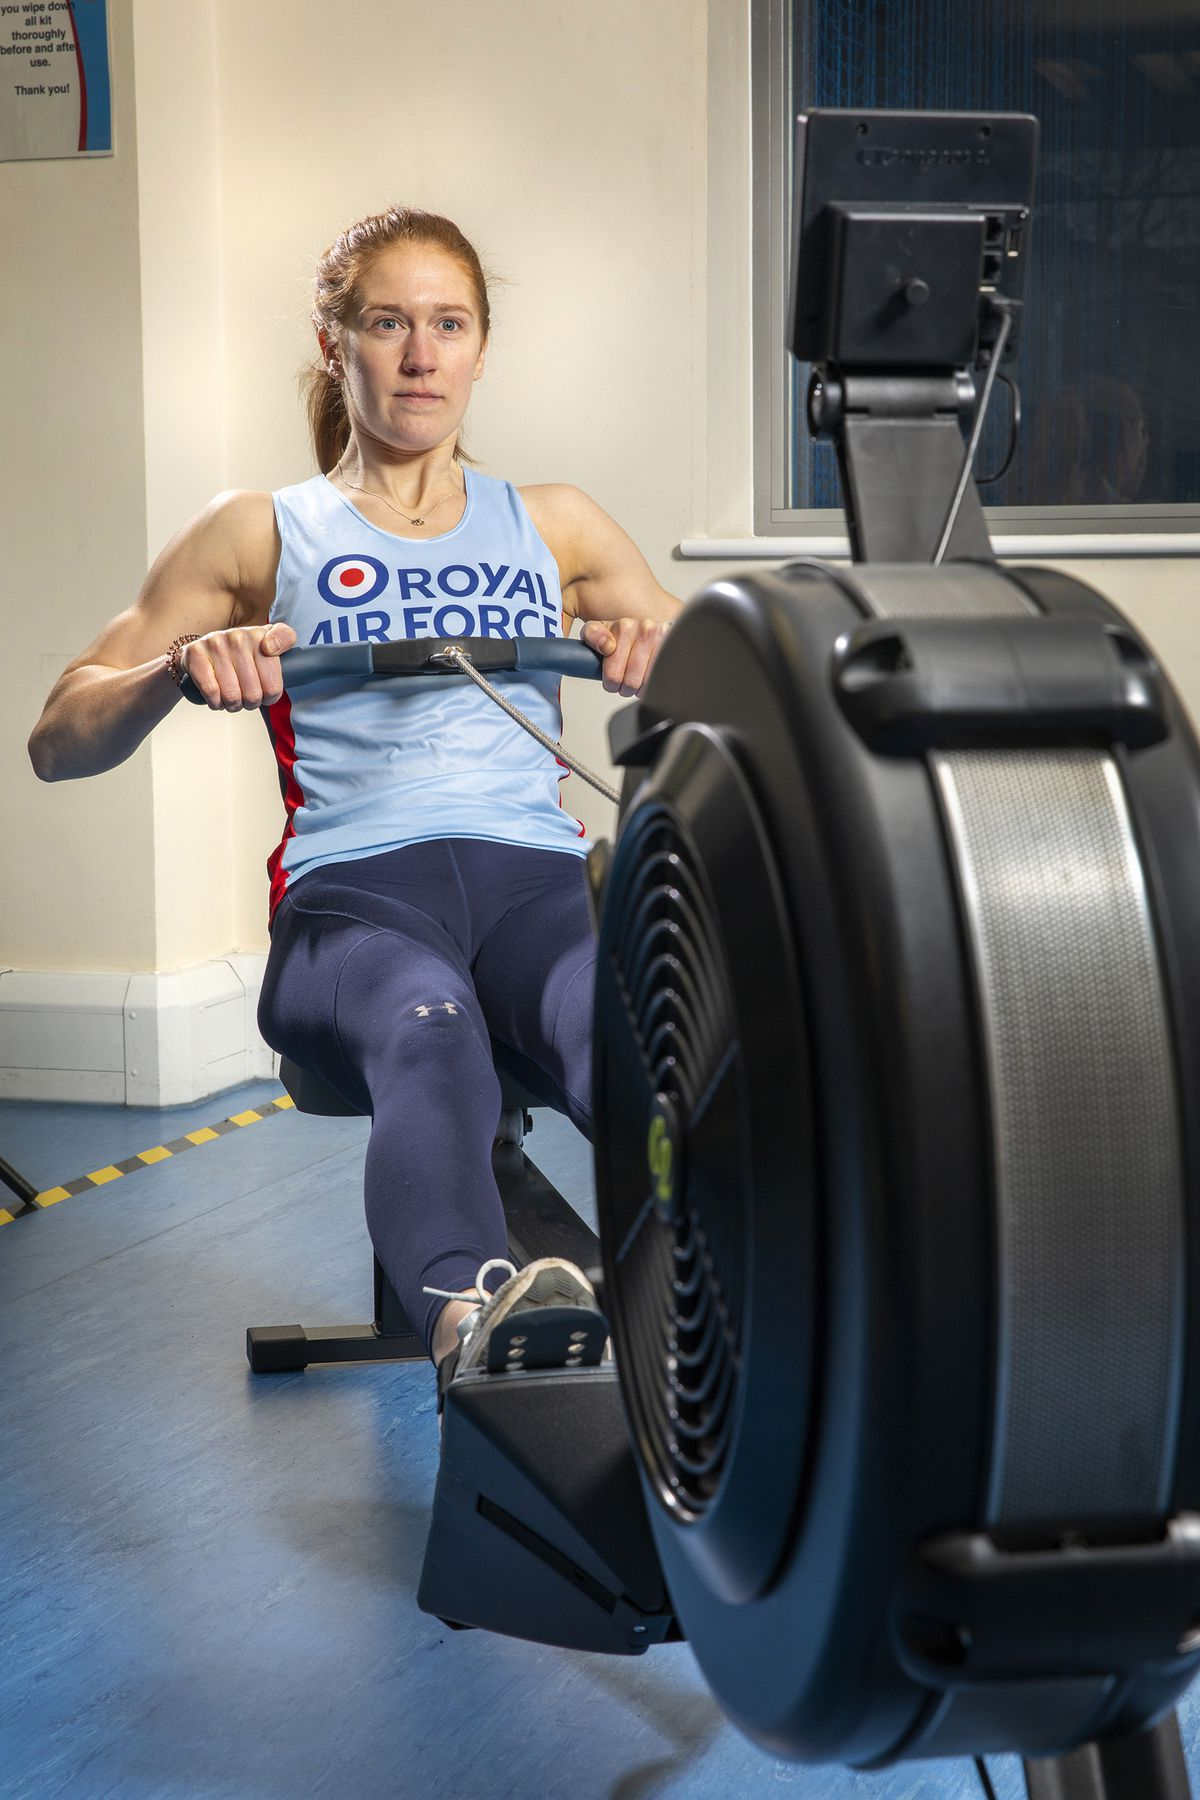 Corporal Victoria Needham has qualified for the rowing world championship finals. Photo: MOD